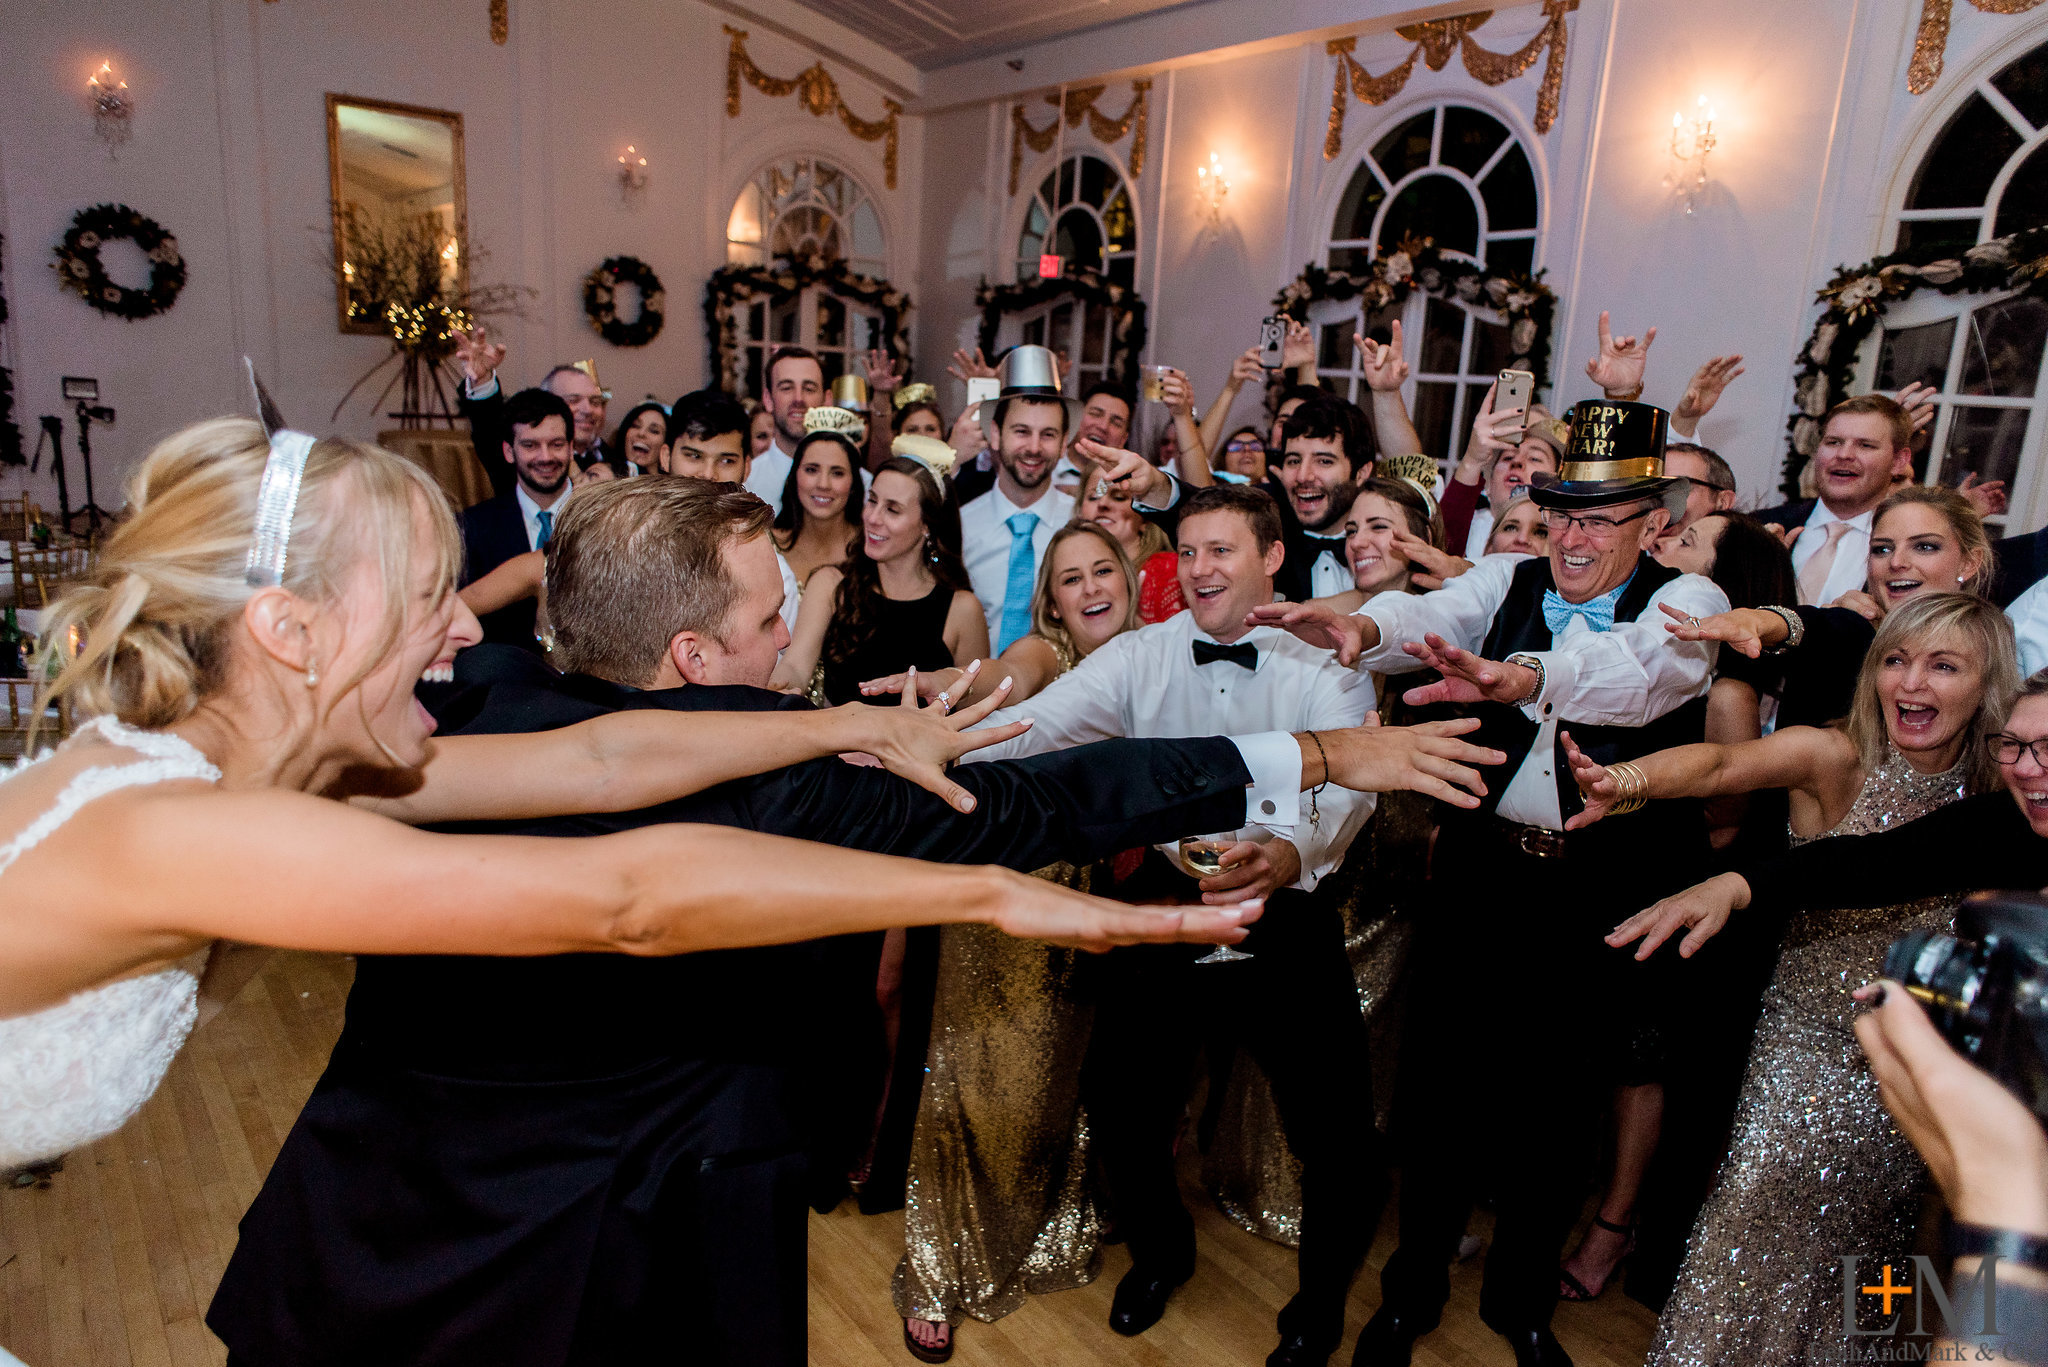 Wimbish House Wedding; New Year's Eve; NYE; Atlanta Wedding Photorapher LeahAndMark